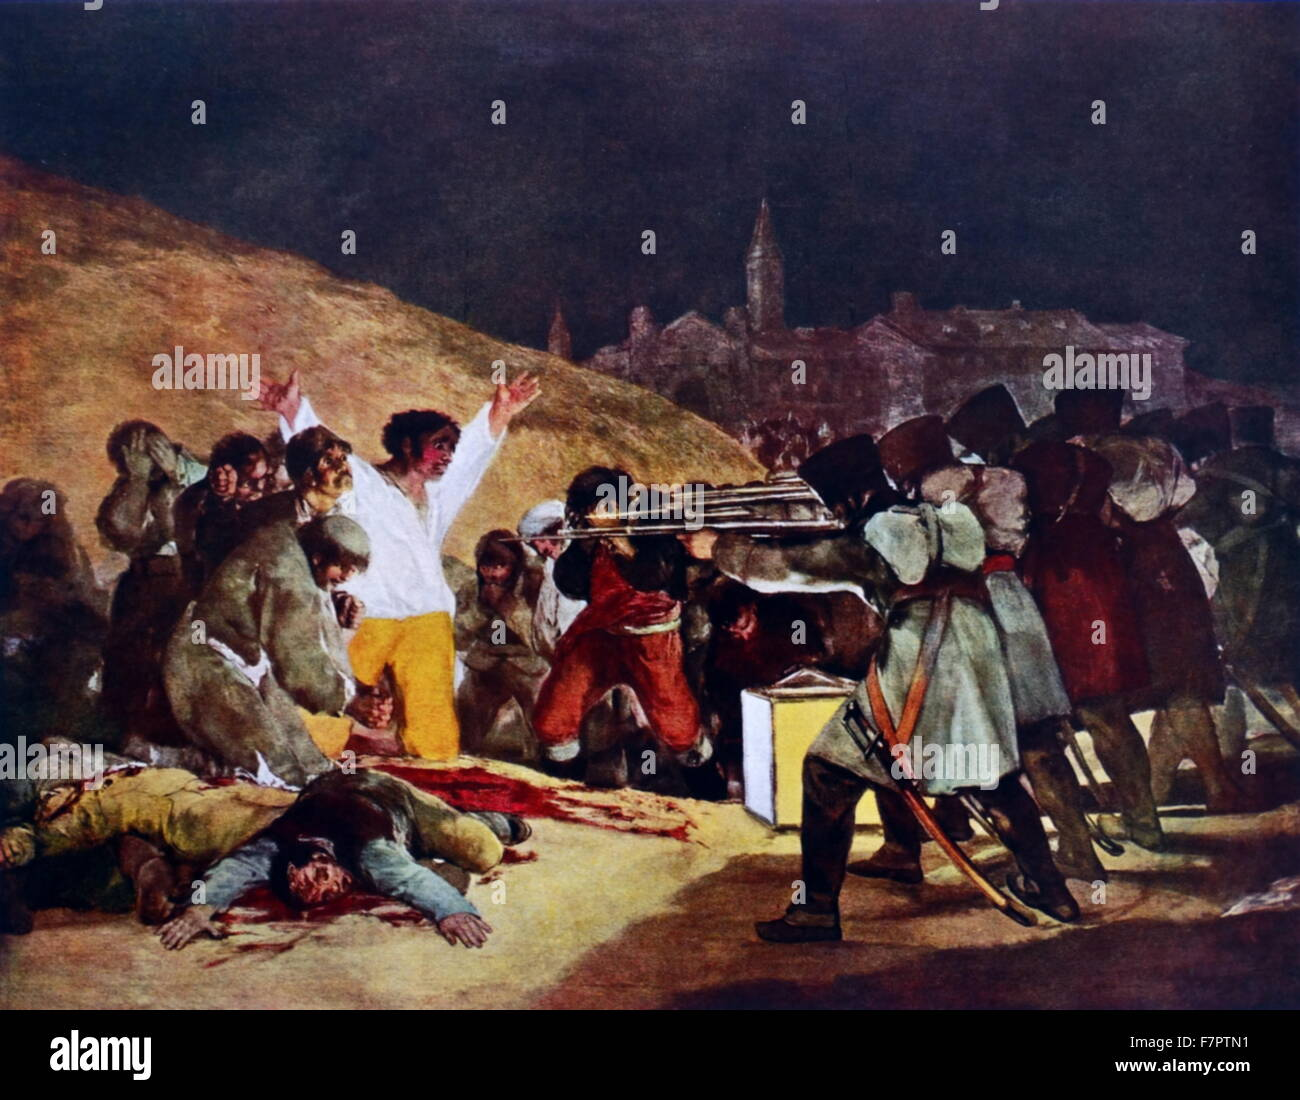 The Third Of May 1808 El Tres De Mayo De 1808 En Madrid Painting Completed In 1814 By The Spanish Painter Francisco Goya It Commemorates The Spanish